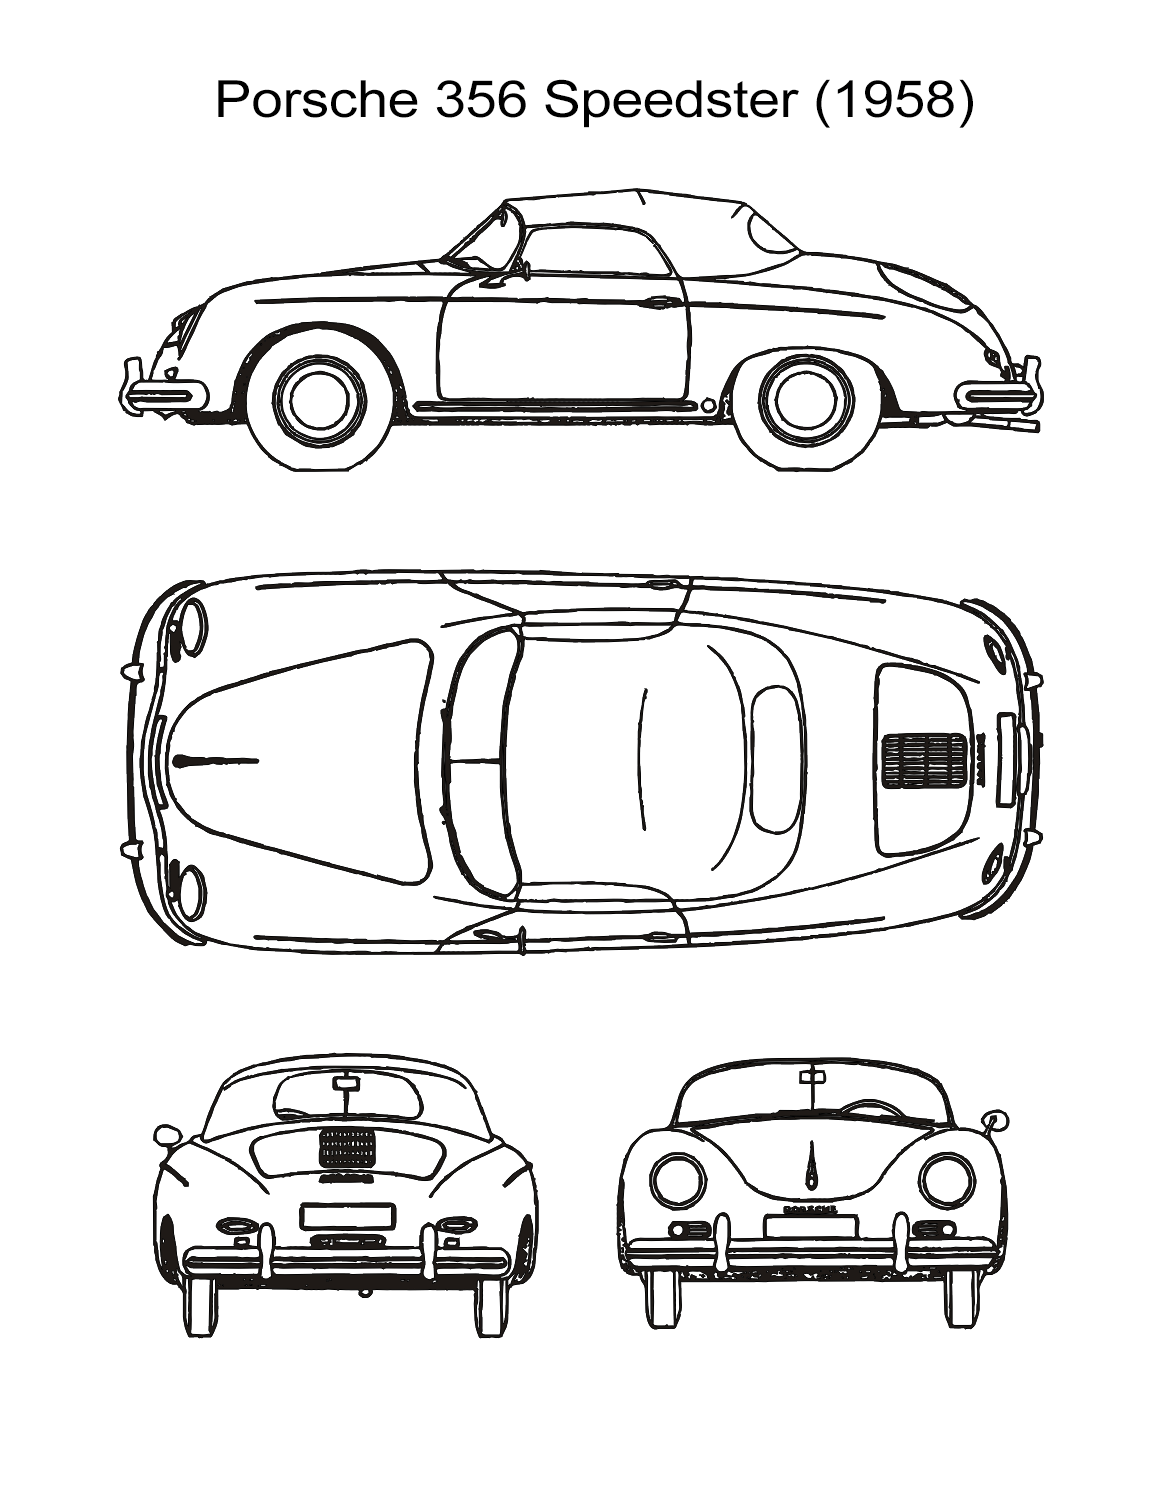 10 Car Coloring Sheets: Sports, Muscle, Racing Cars and More - All ESL